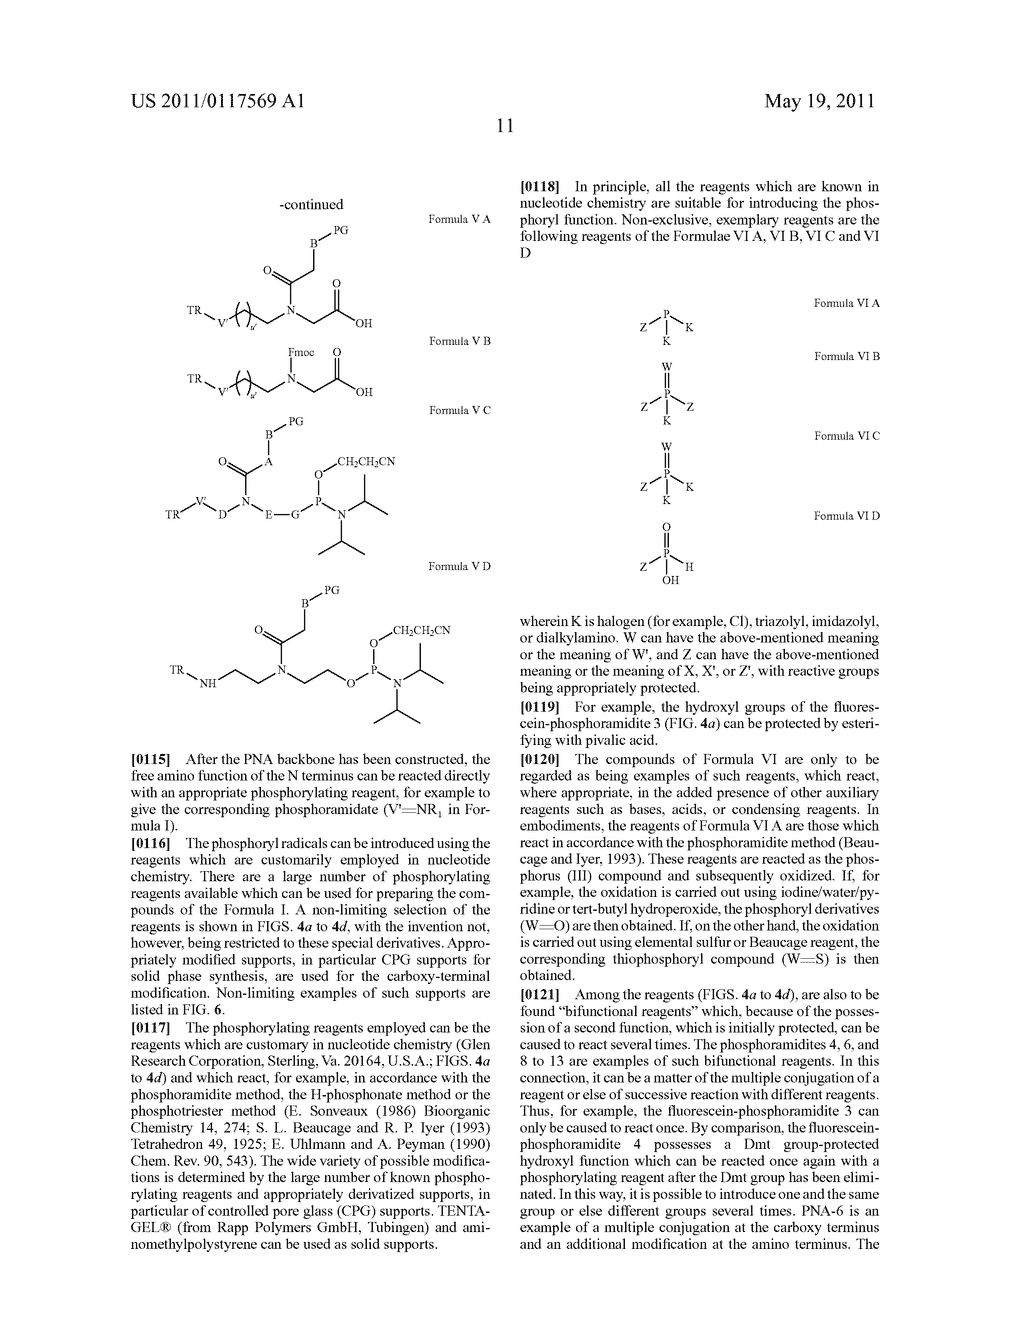 POLYMIDE NUCLEIC ACID DERIVATIVES, AND AGENTS AND PROCESSES FOR PREPARING THEM - diagram, schematic, and image 28